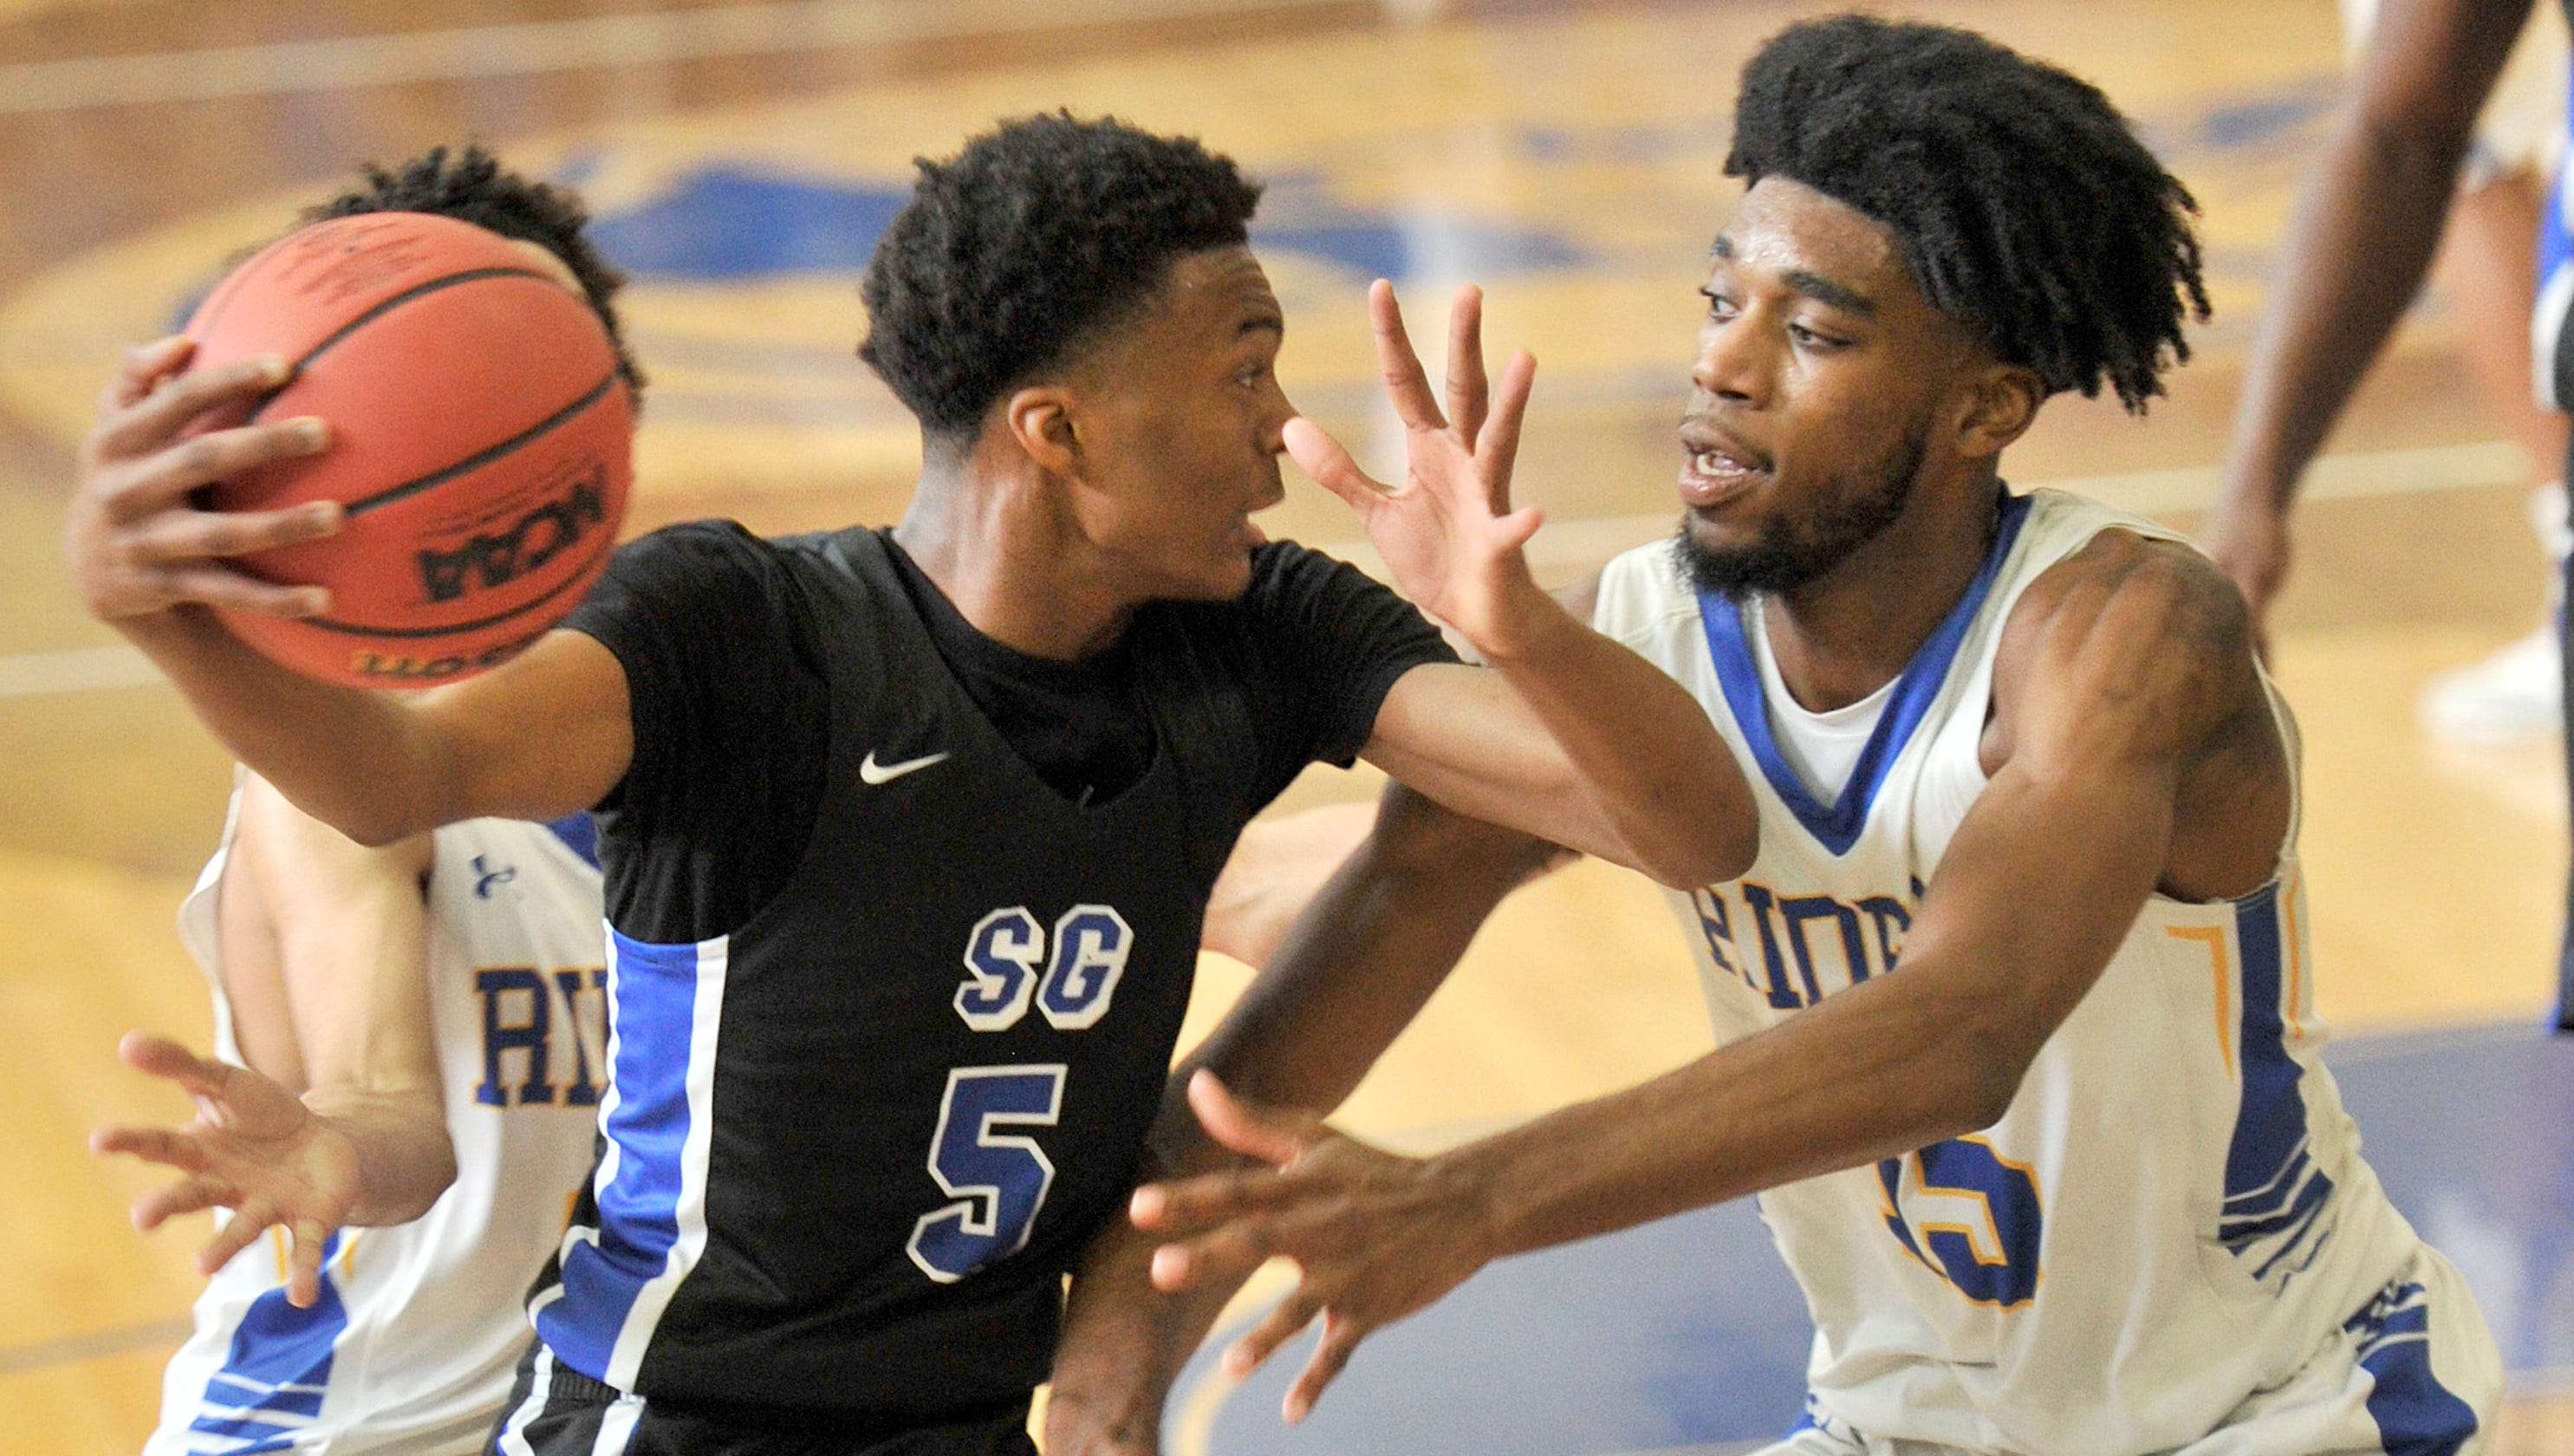 b323327b4c St. Georges' Hyland is Player of the Year, heads All-State boys basketball  team